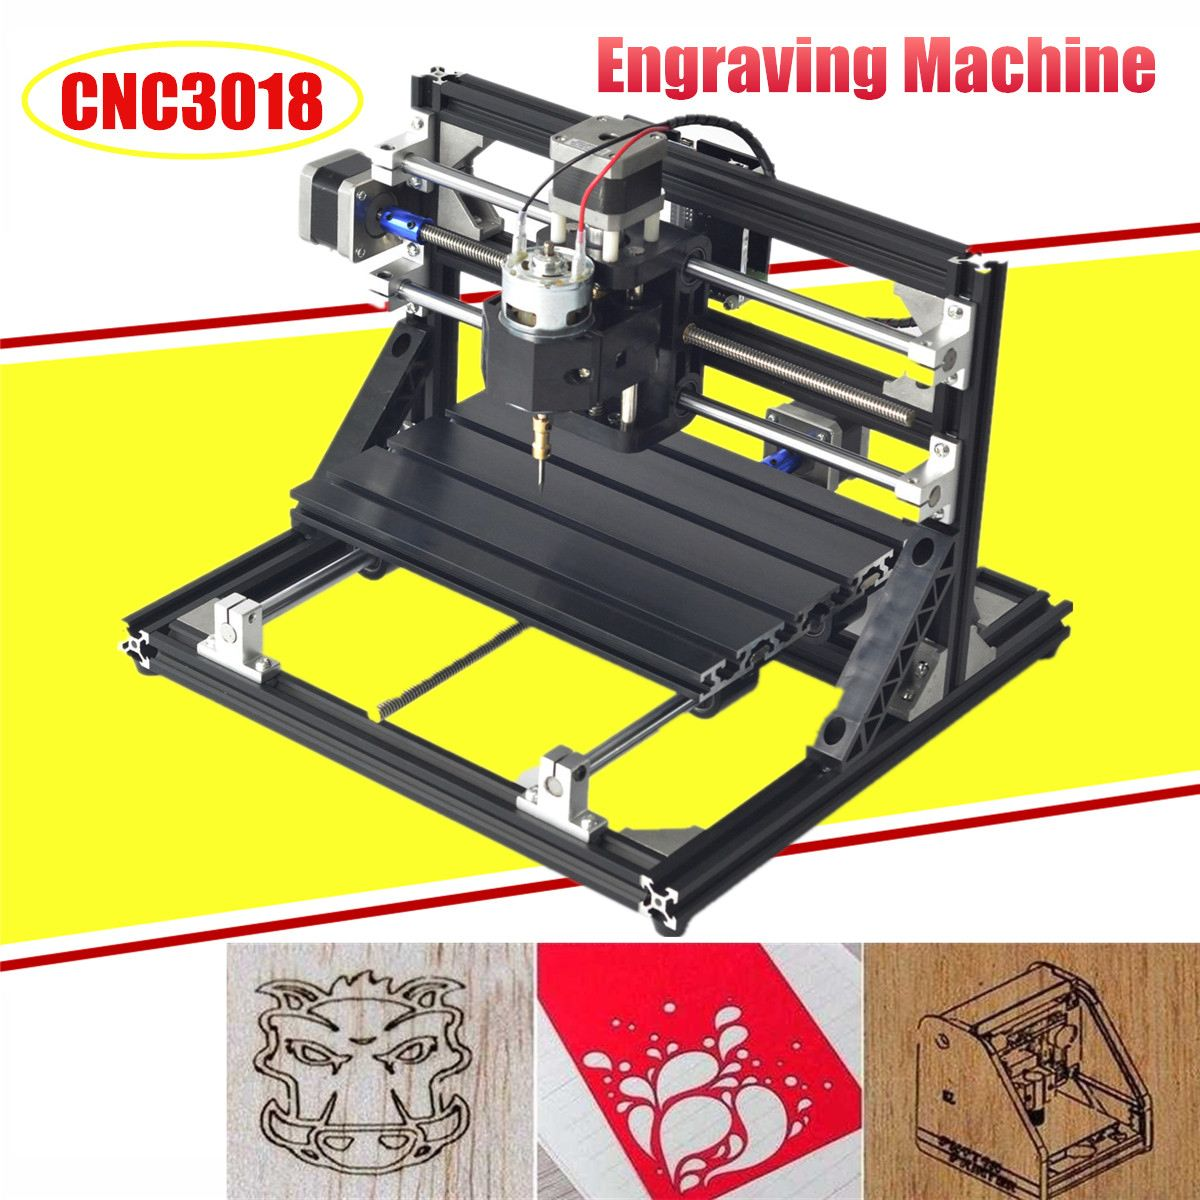 CNC3018,diy Mini Cnc Engraving Machine,laser Engraving,Pcb PVC Milling Machine,wood Router,cnc 3018,best Advanced Toys